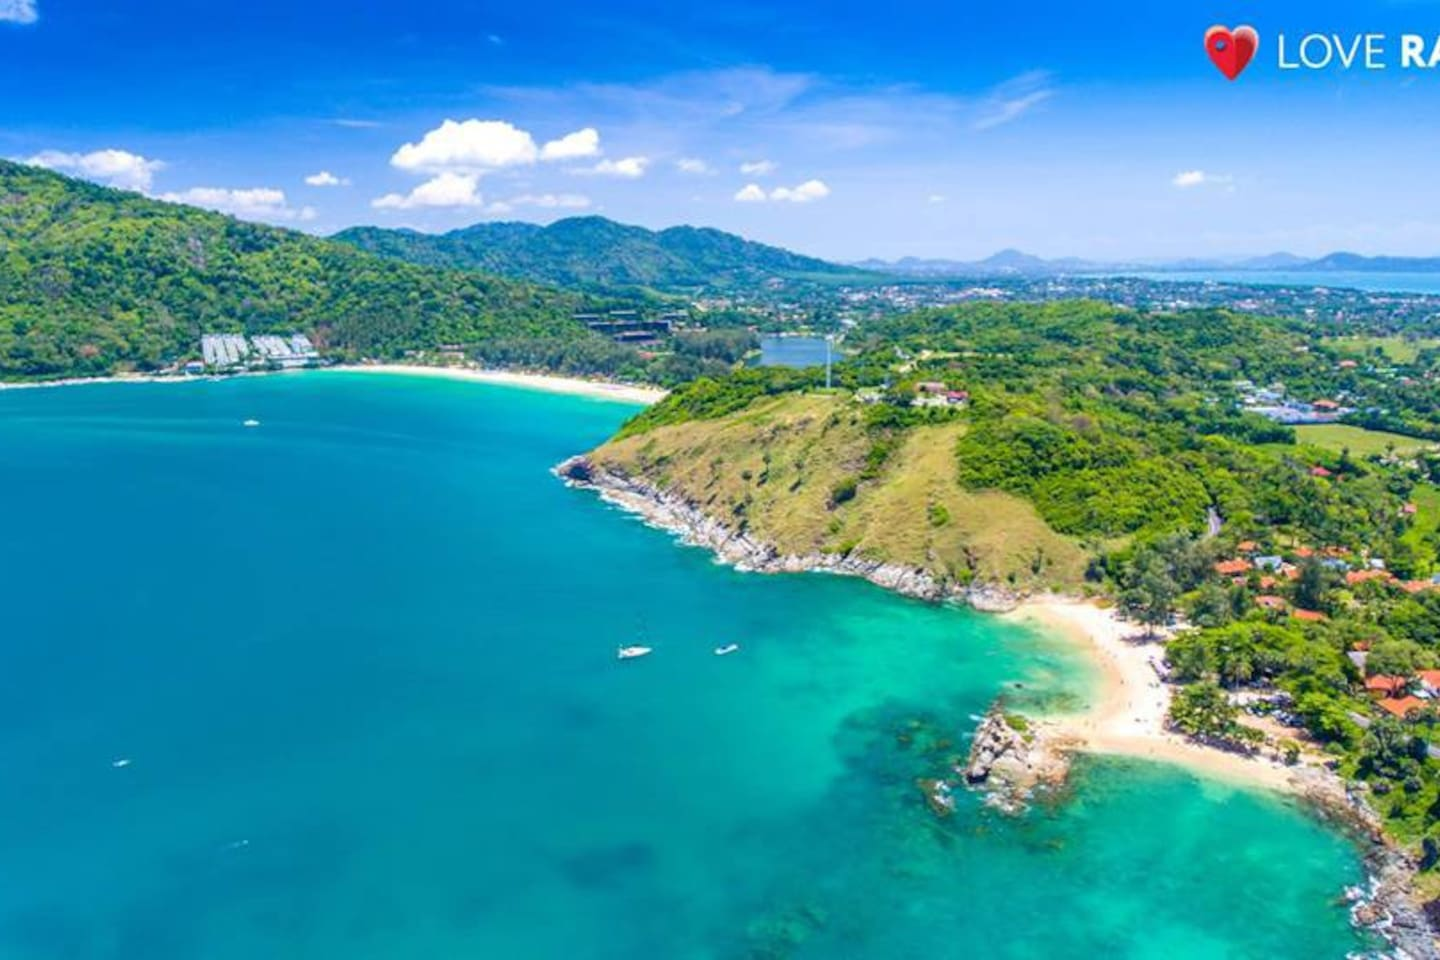 Nai harn beach and Ya Nui beach, aerial view. Just a leisurely 5 minute drive from your villa.